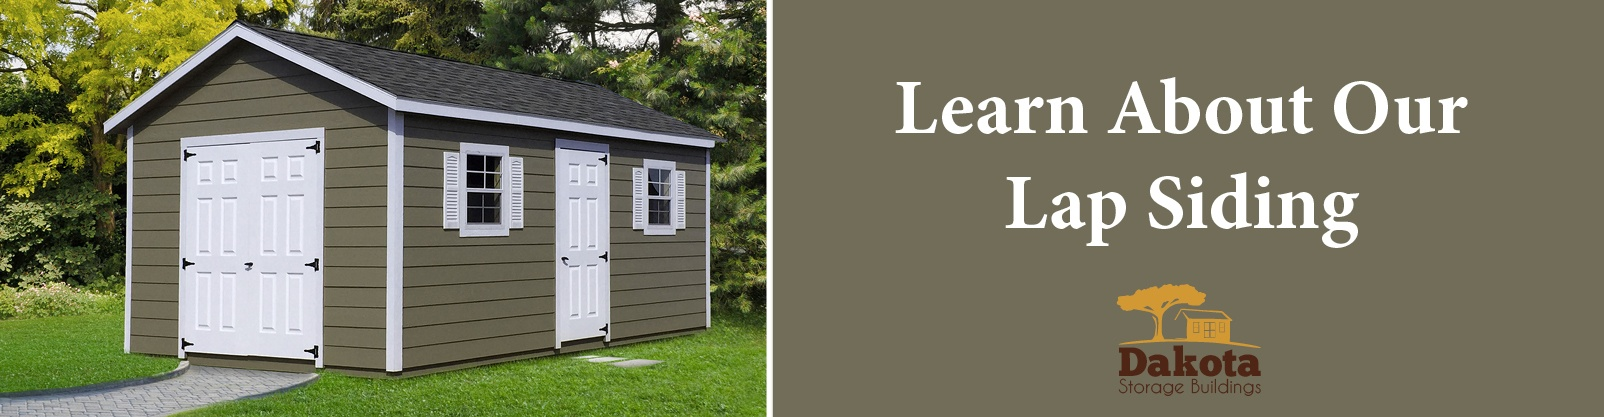 Learn About Our Lap Siding